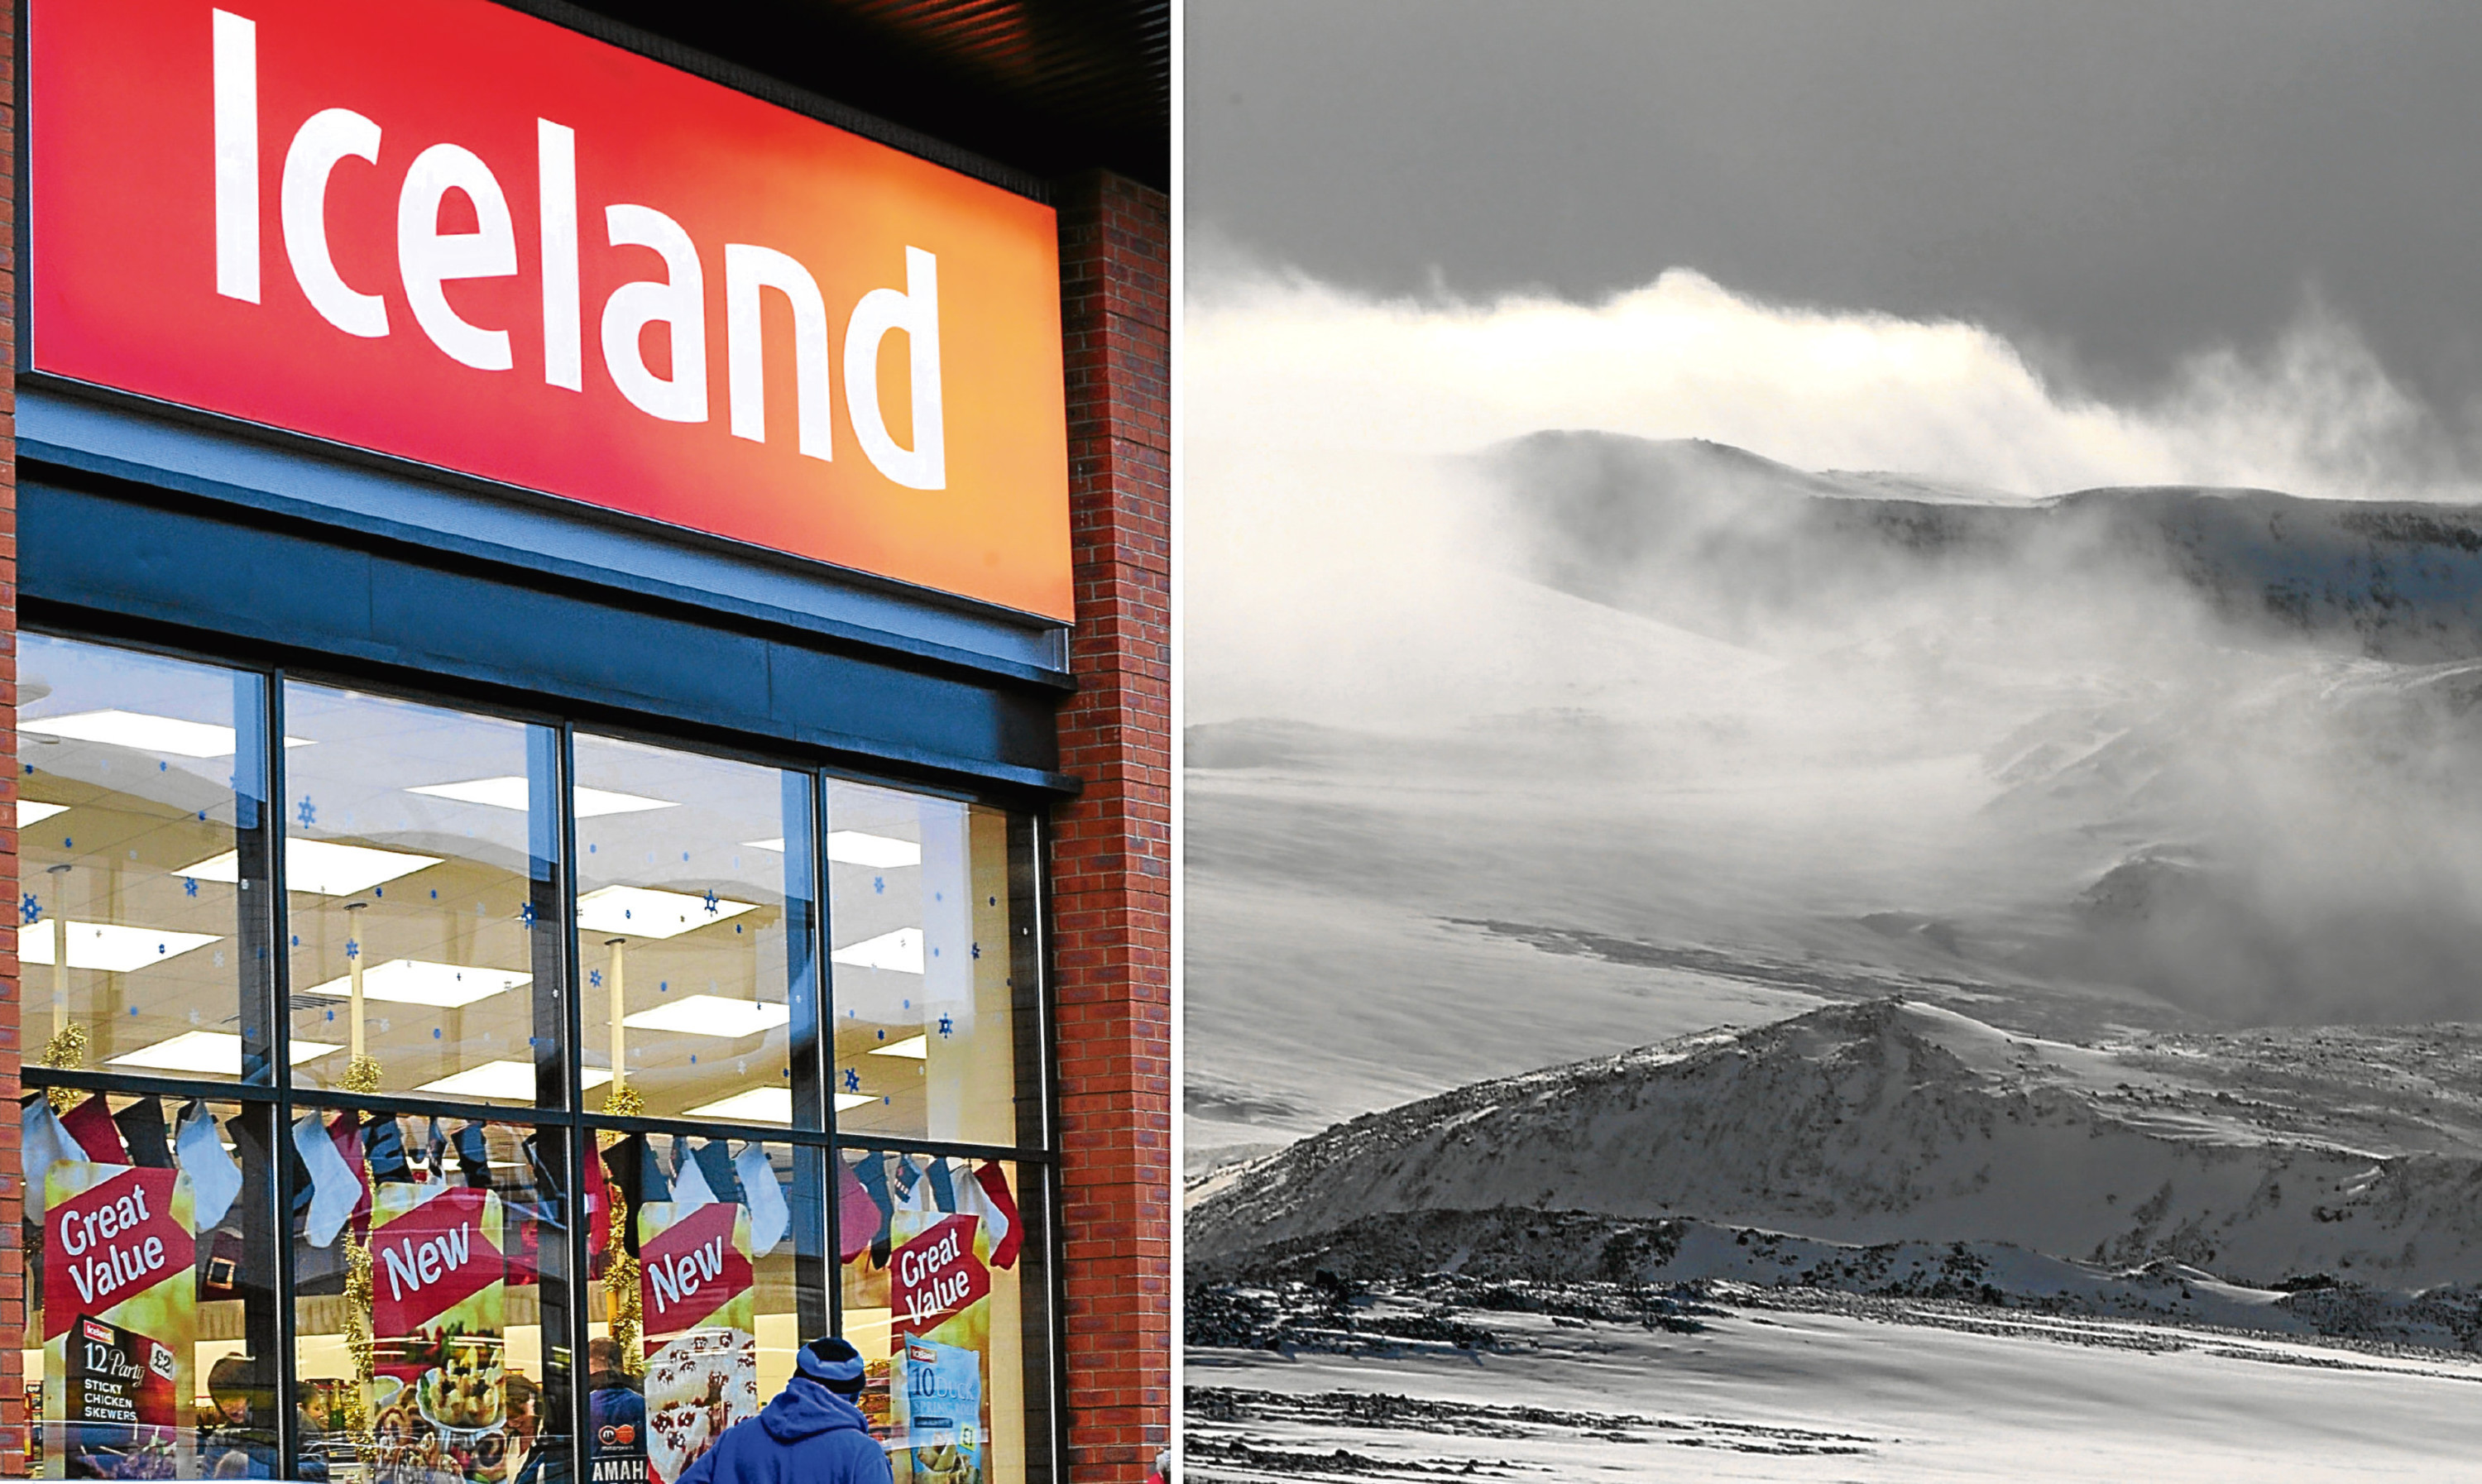 Iceland the shop and Iceland the country. Can you tell which is which?